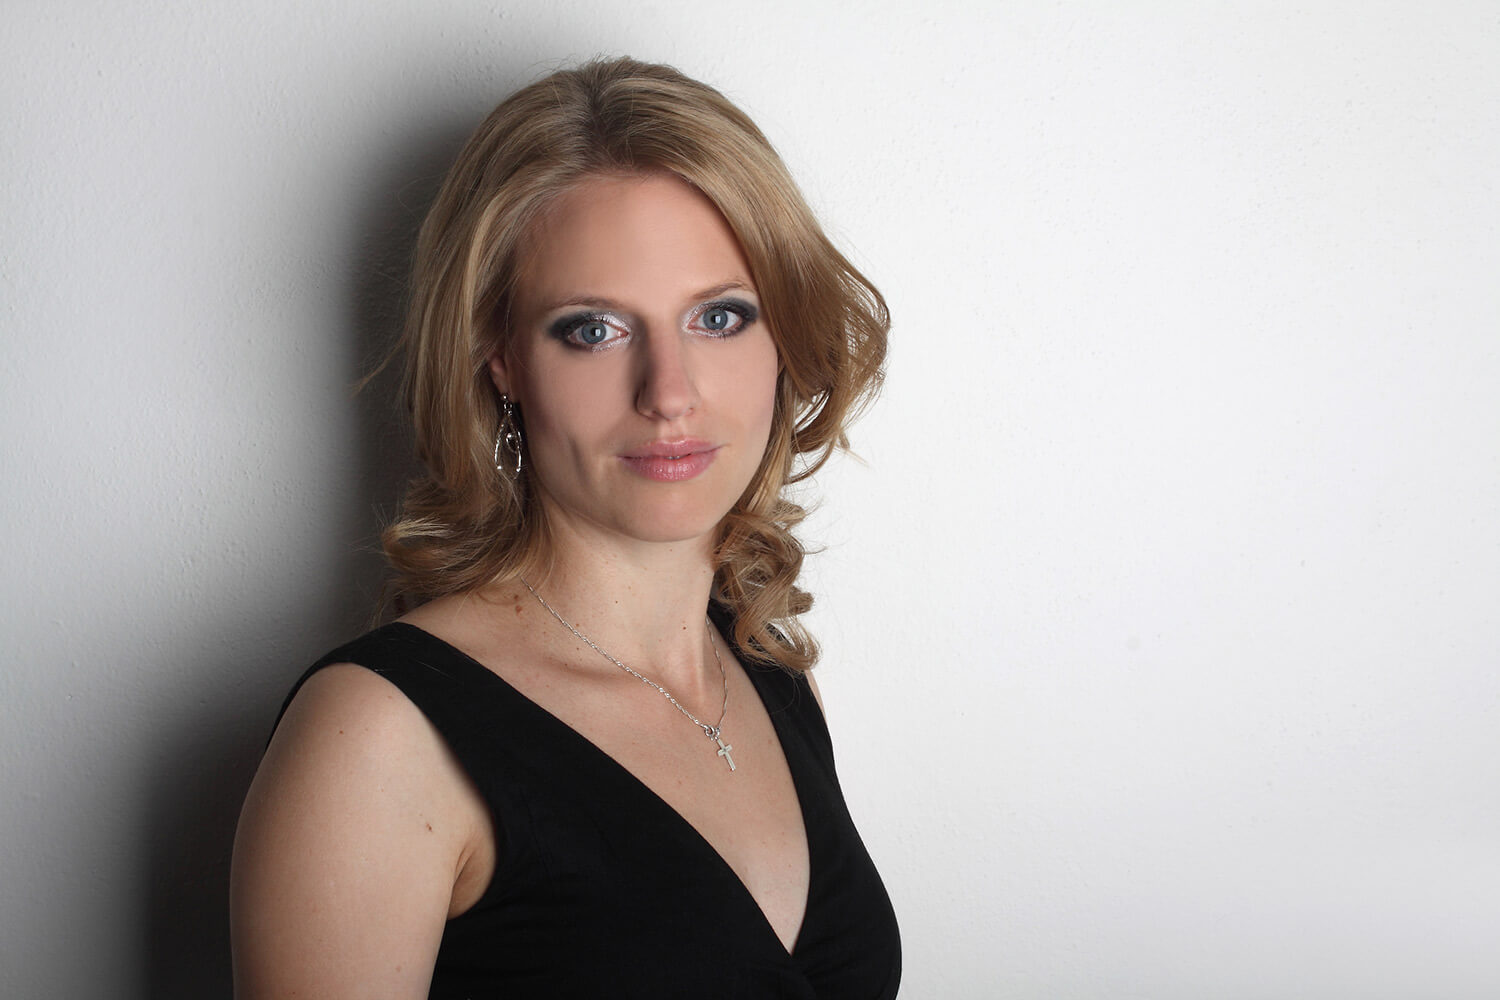 female business portrait in a black dress on a light background